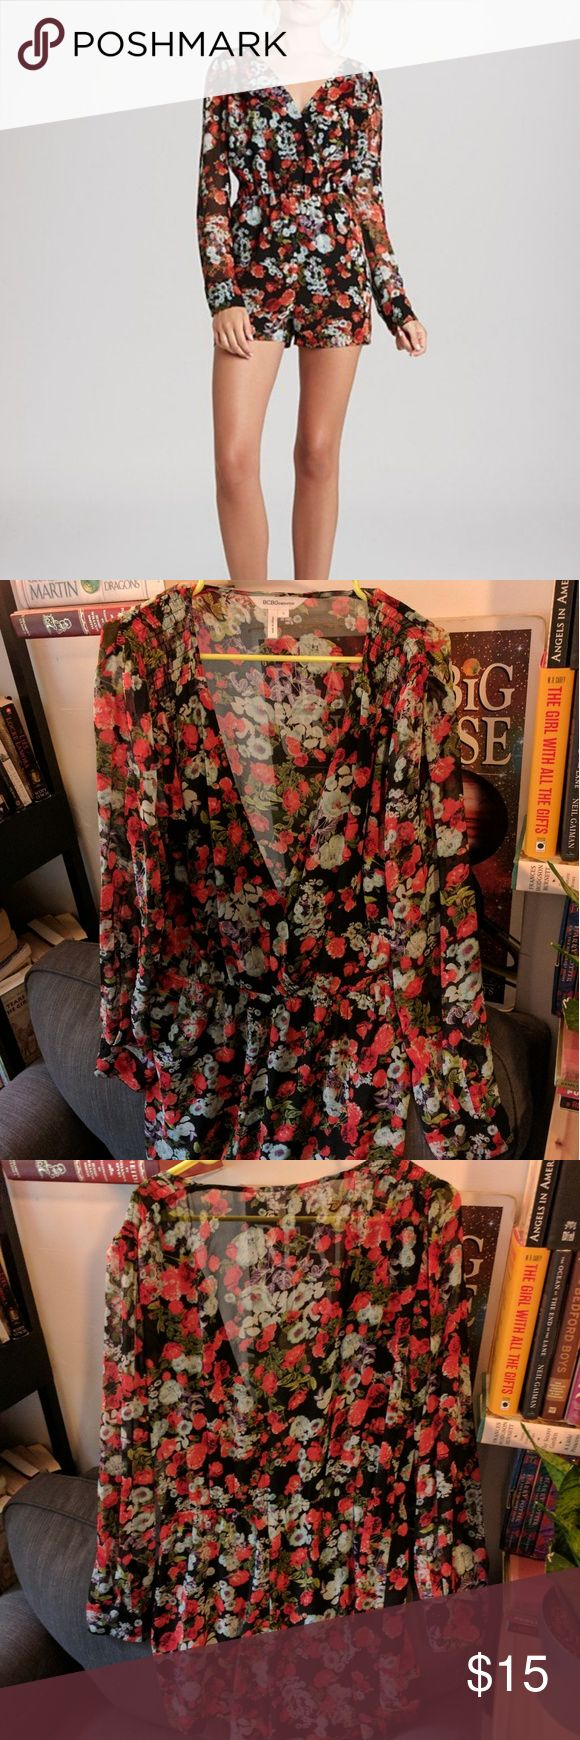 BCBGeneration Long Sleeve Floral Romper Only worn twice, excellent condition. Snaps to make it as booby or not booby as you want. Very cute with a waist belt. Easy on and off so you're not trapped and fighting for your life if you have to go to the bathroom.   Bottom and front are lined, while the back is somewhat see through. BCBGeneration Shorts